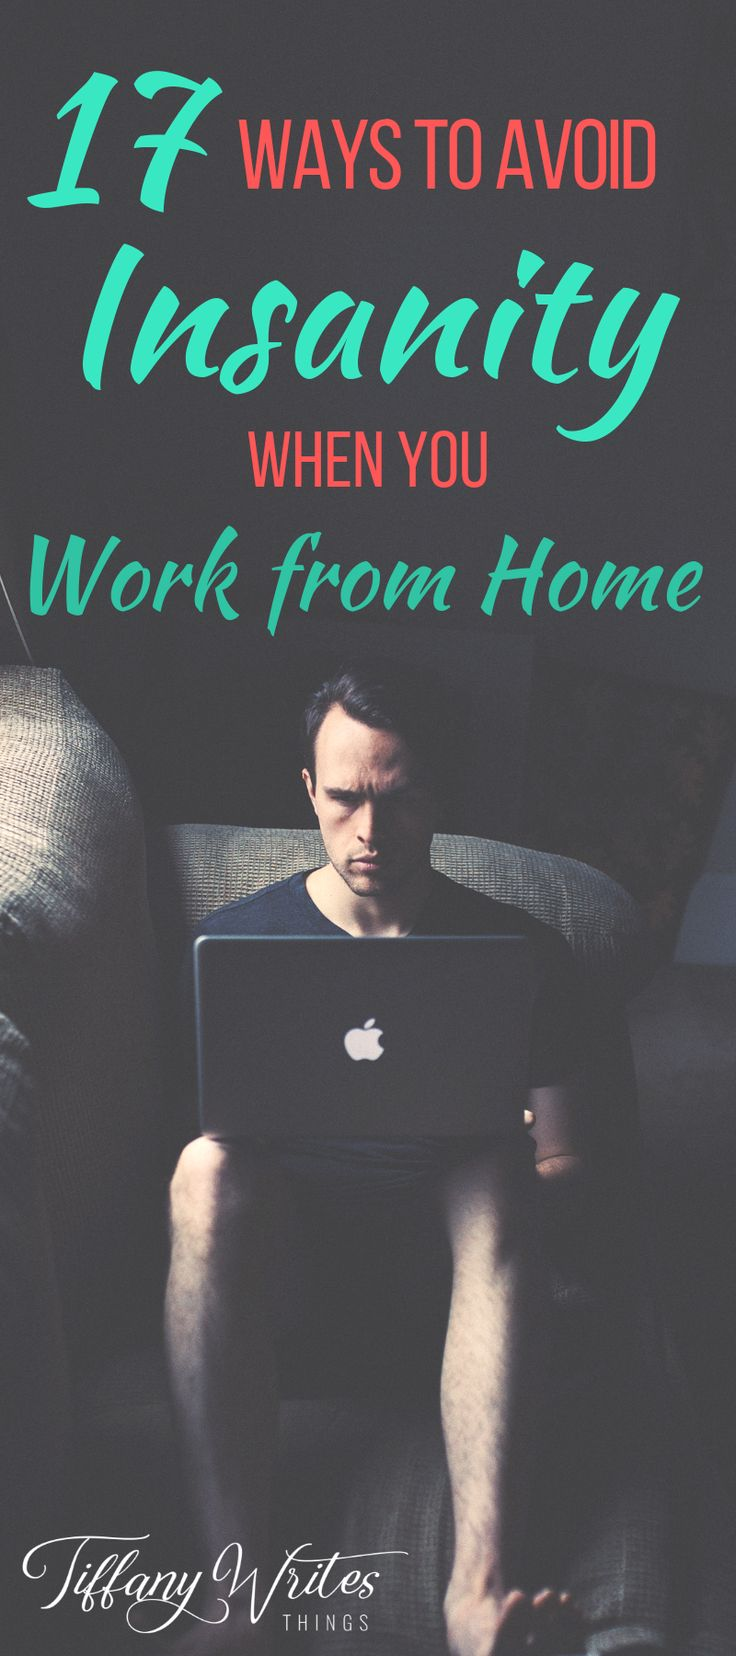 17 Foolproof Ways to Avoid Insanity When You Work From Home